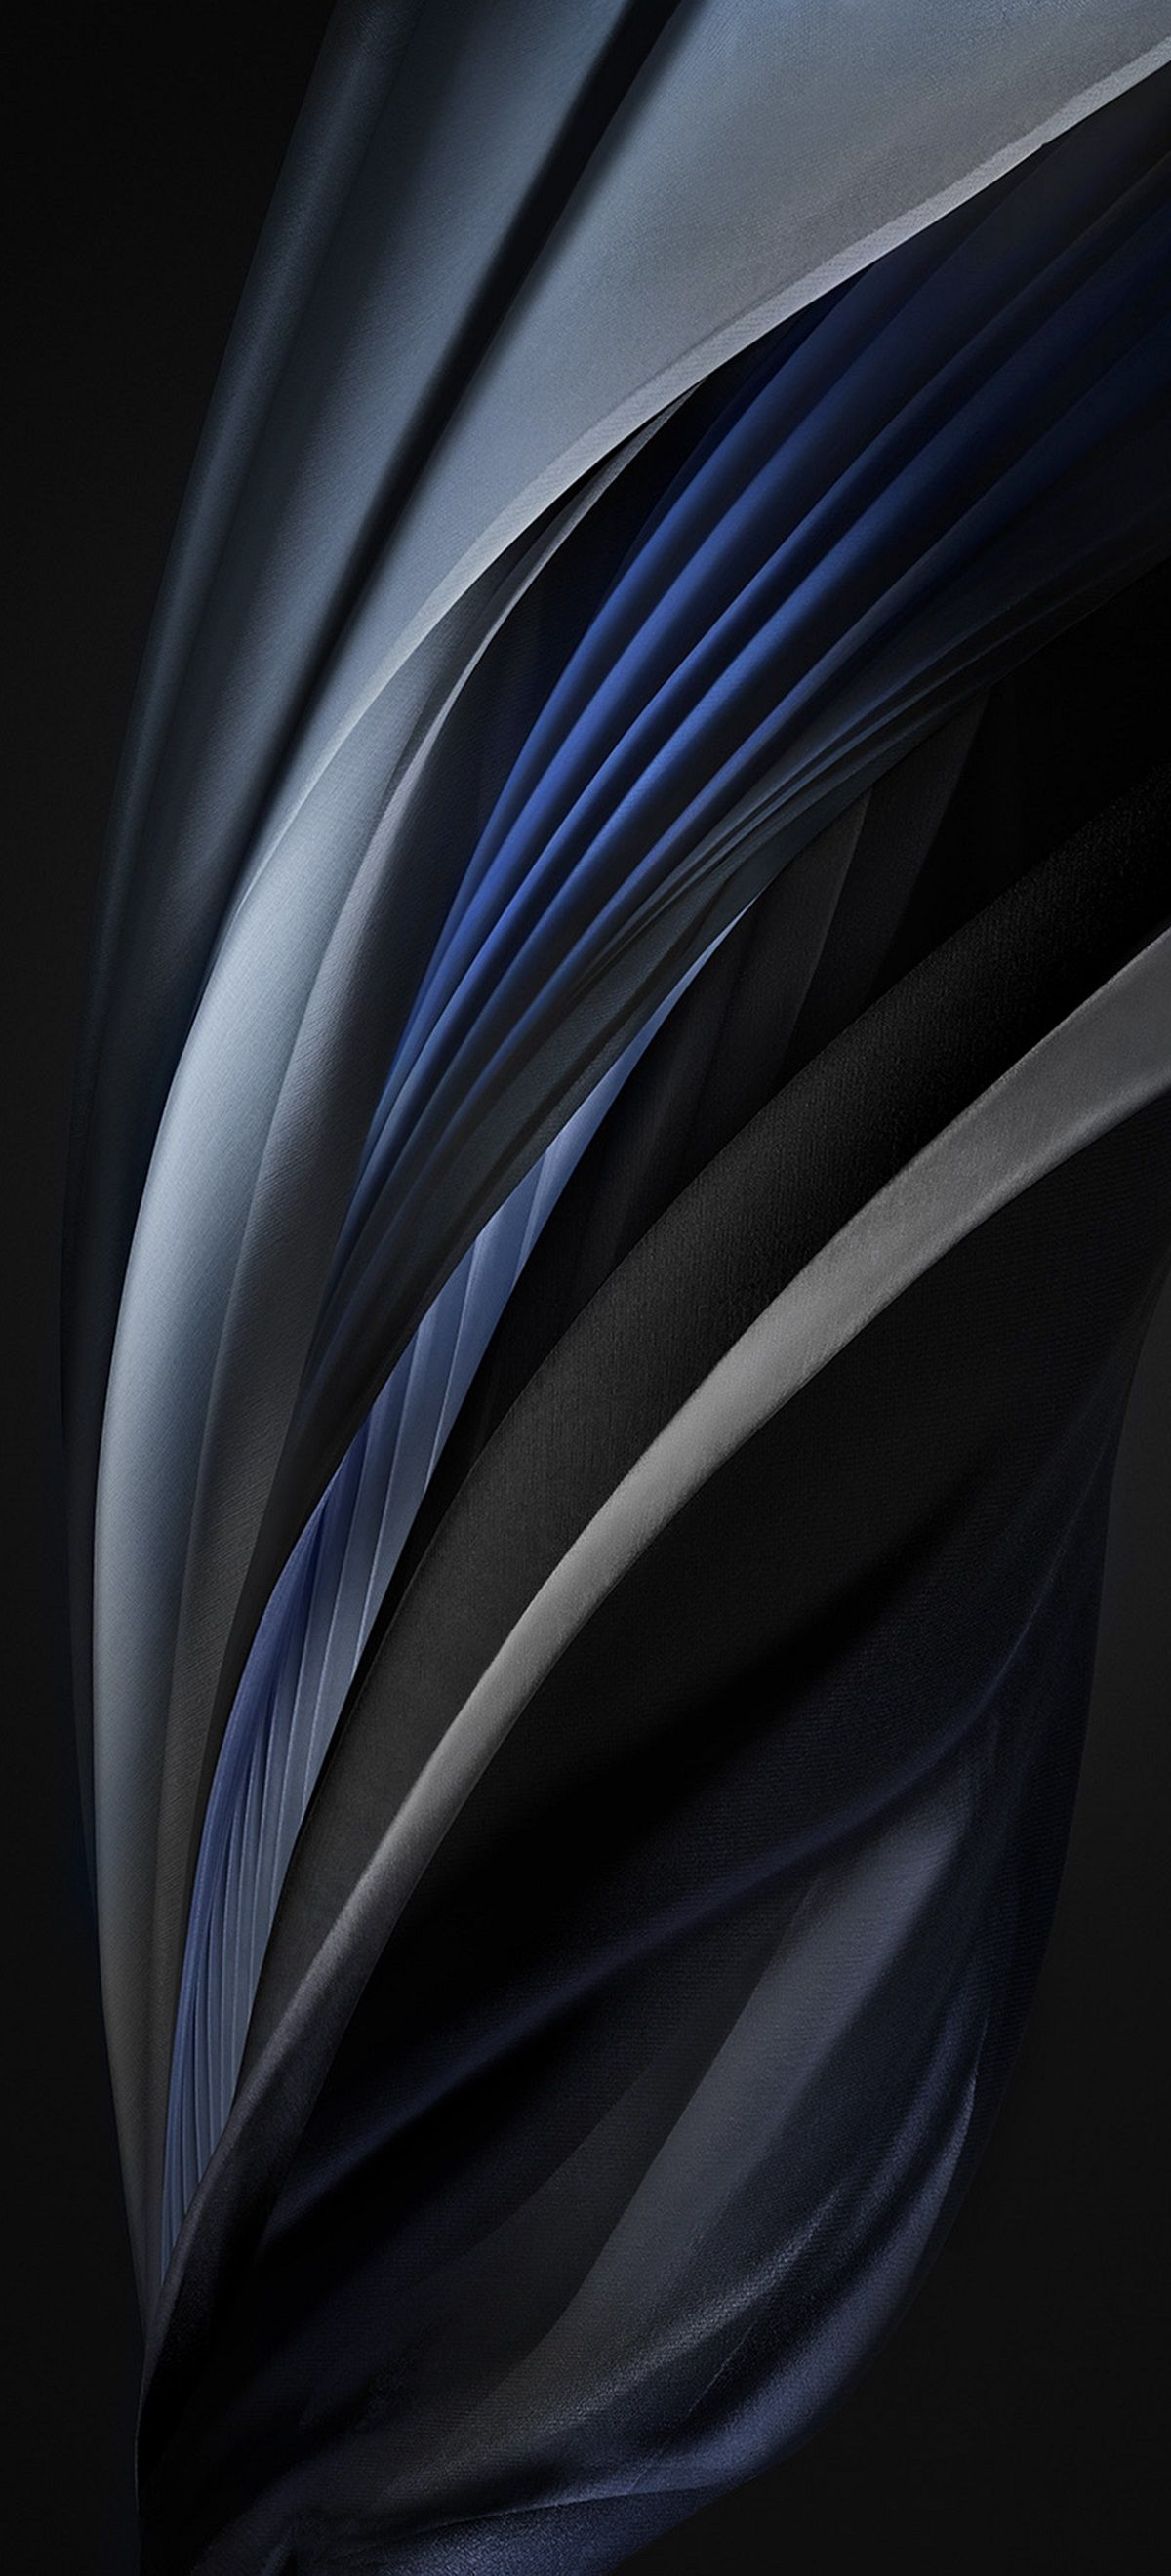 iPhone 12 SE 2020 Wallpapers 6 1200x2640 2190000094